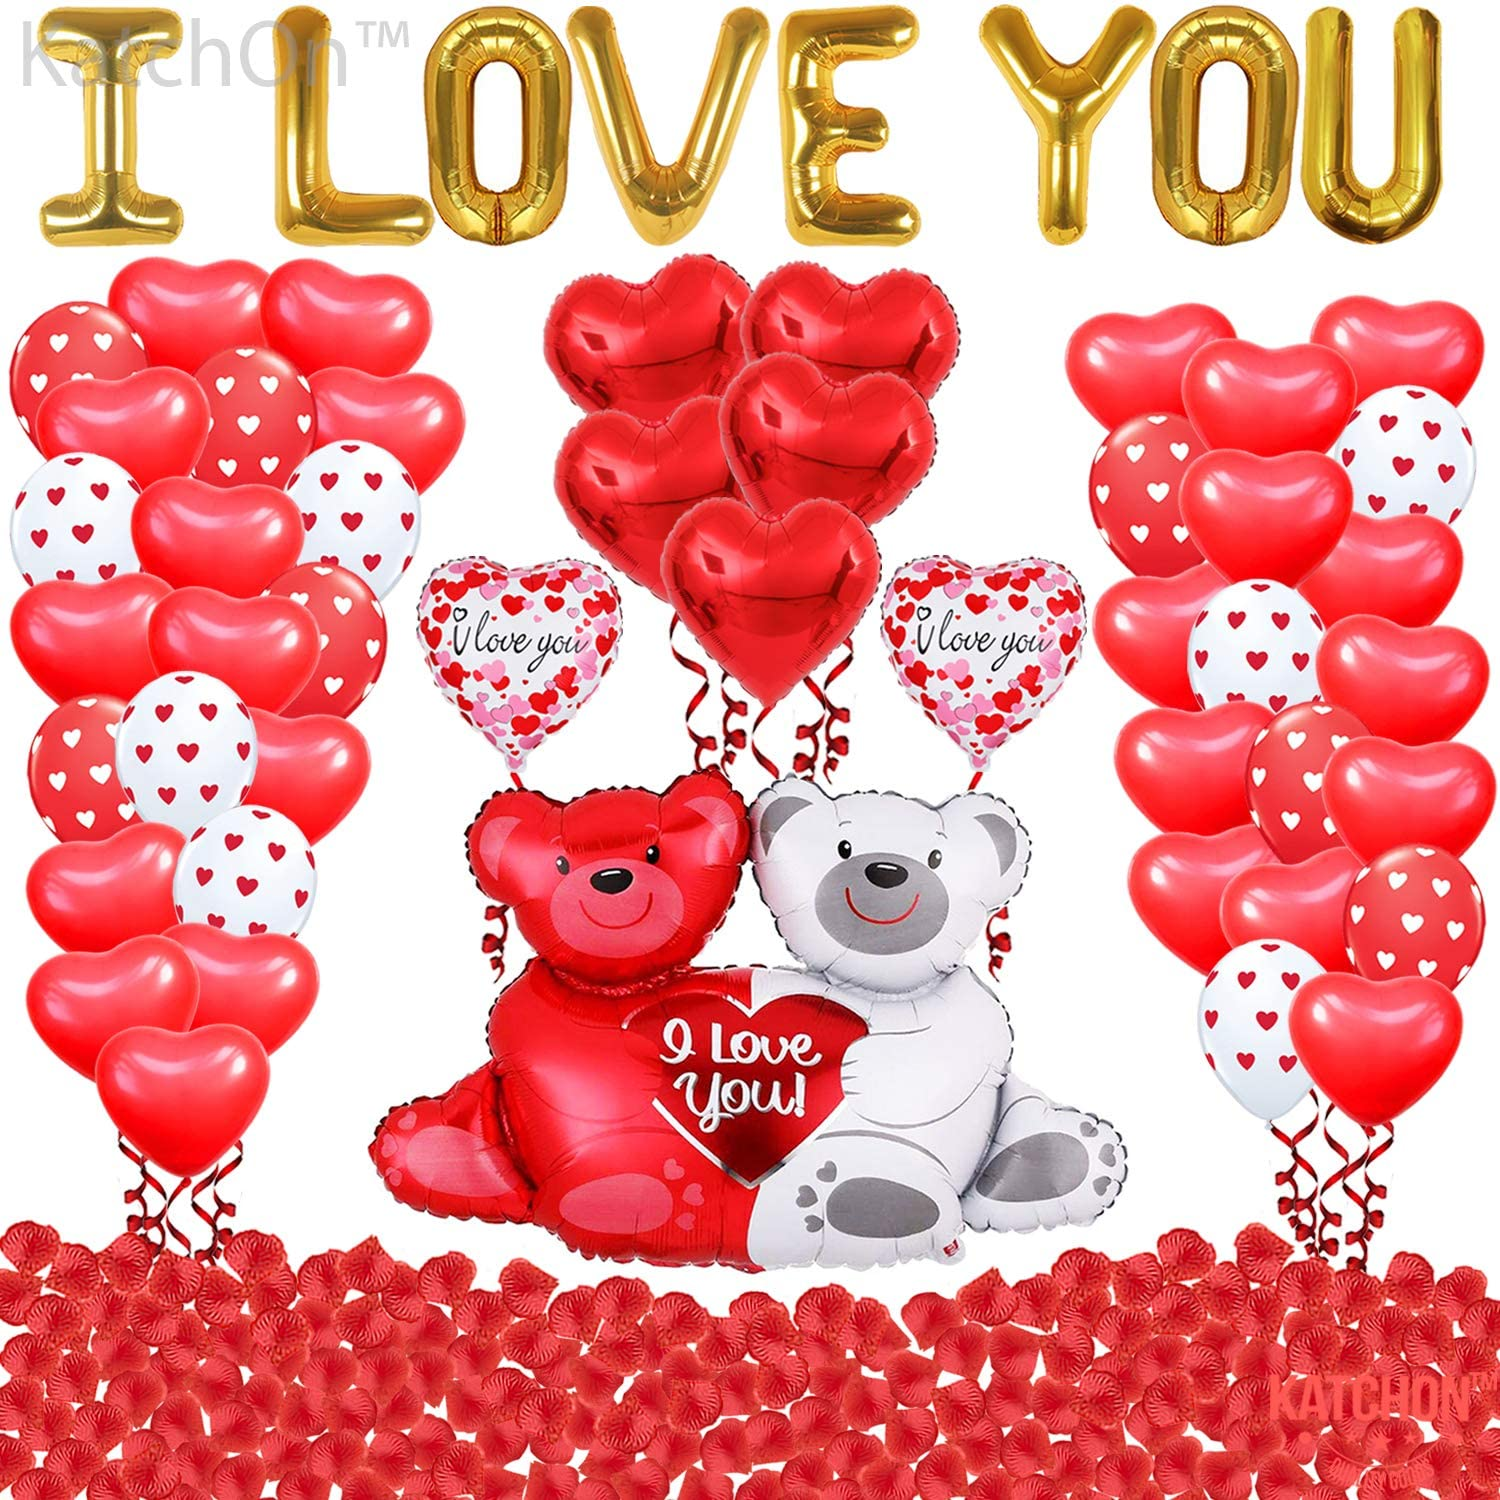 Valentines Decorations Ballooons and Rose Petals - 1000 Red Rose Petals for Romantic Night | I Love You Balloons for Valentines Decorations | Mylar Red Heart Balloons | Teaddy Bear Valentines Balloons